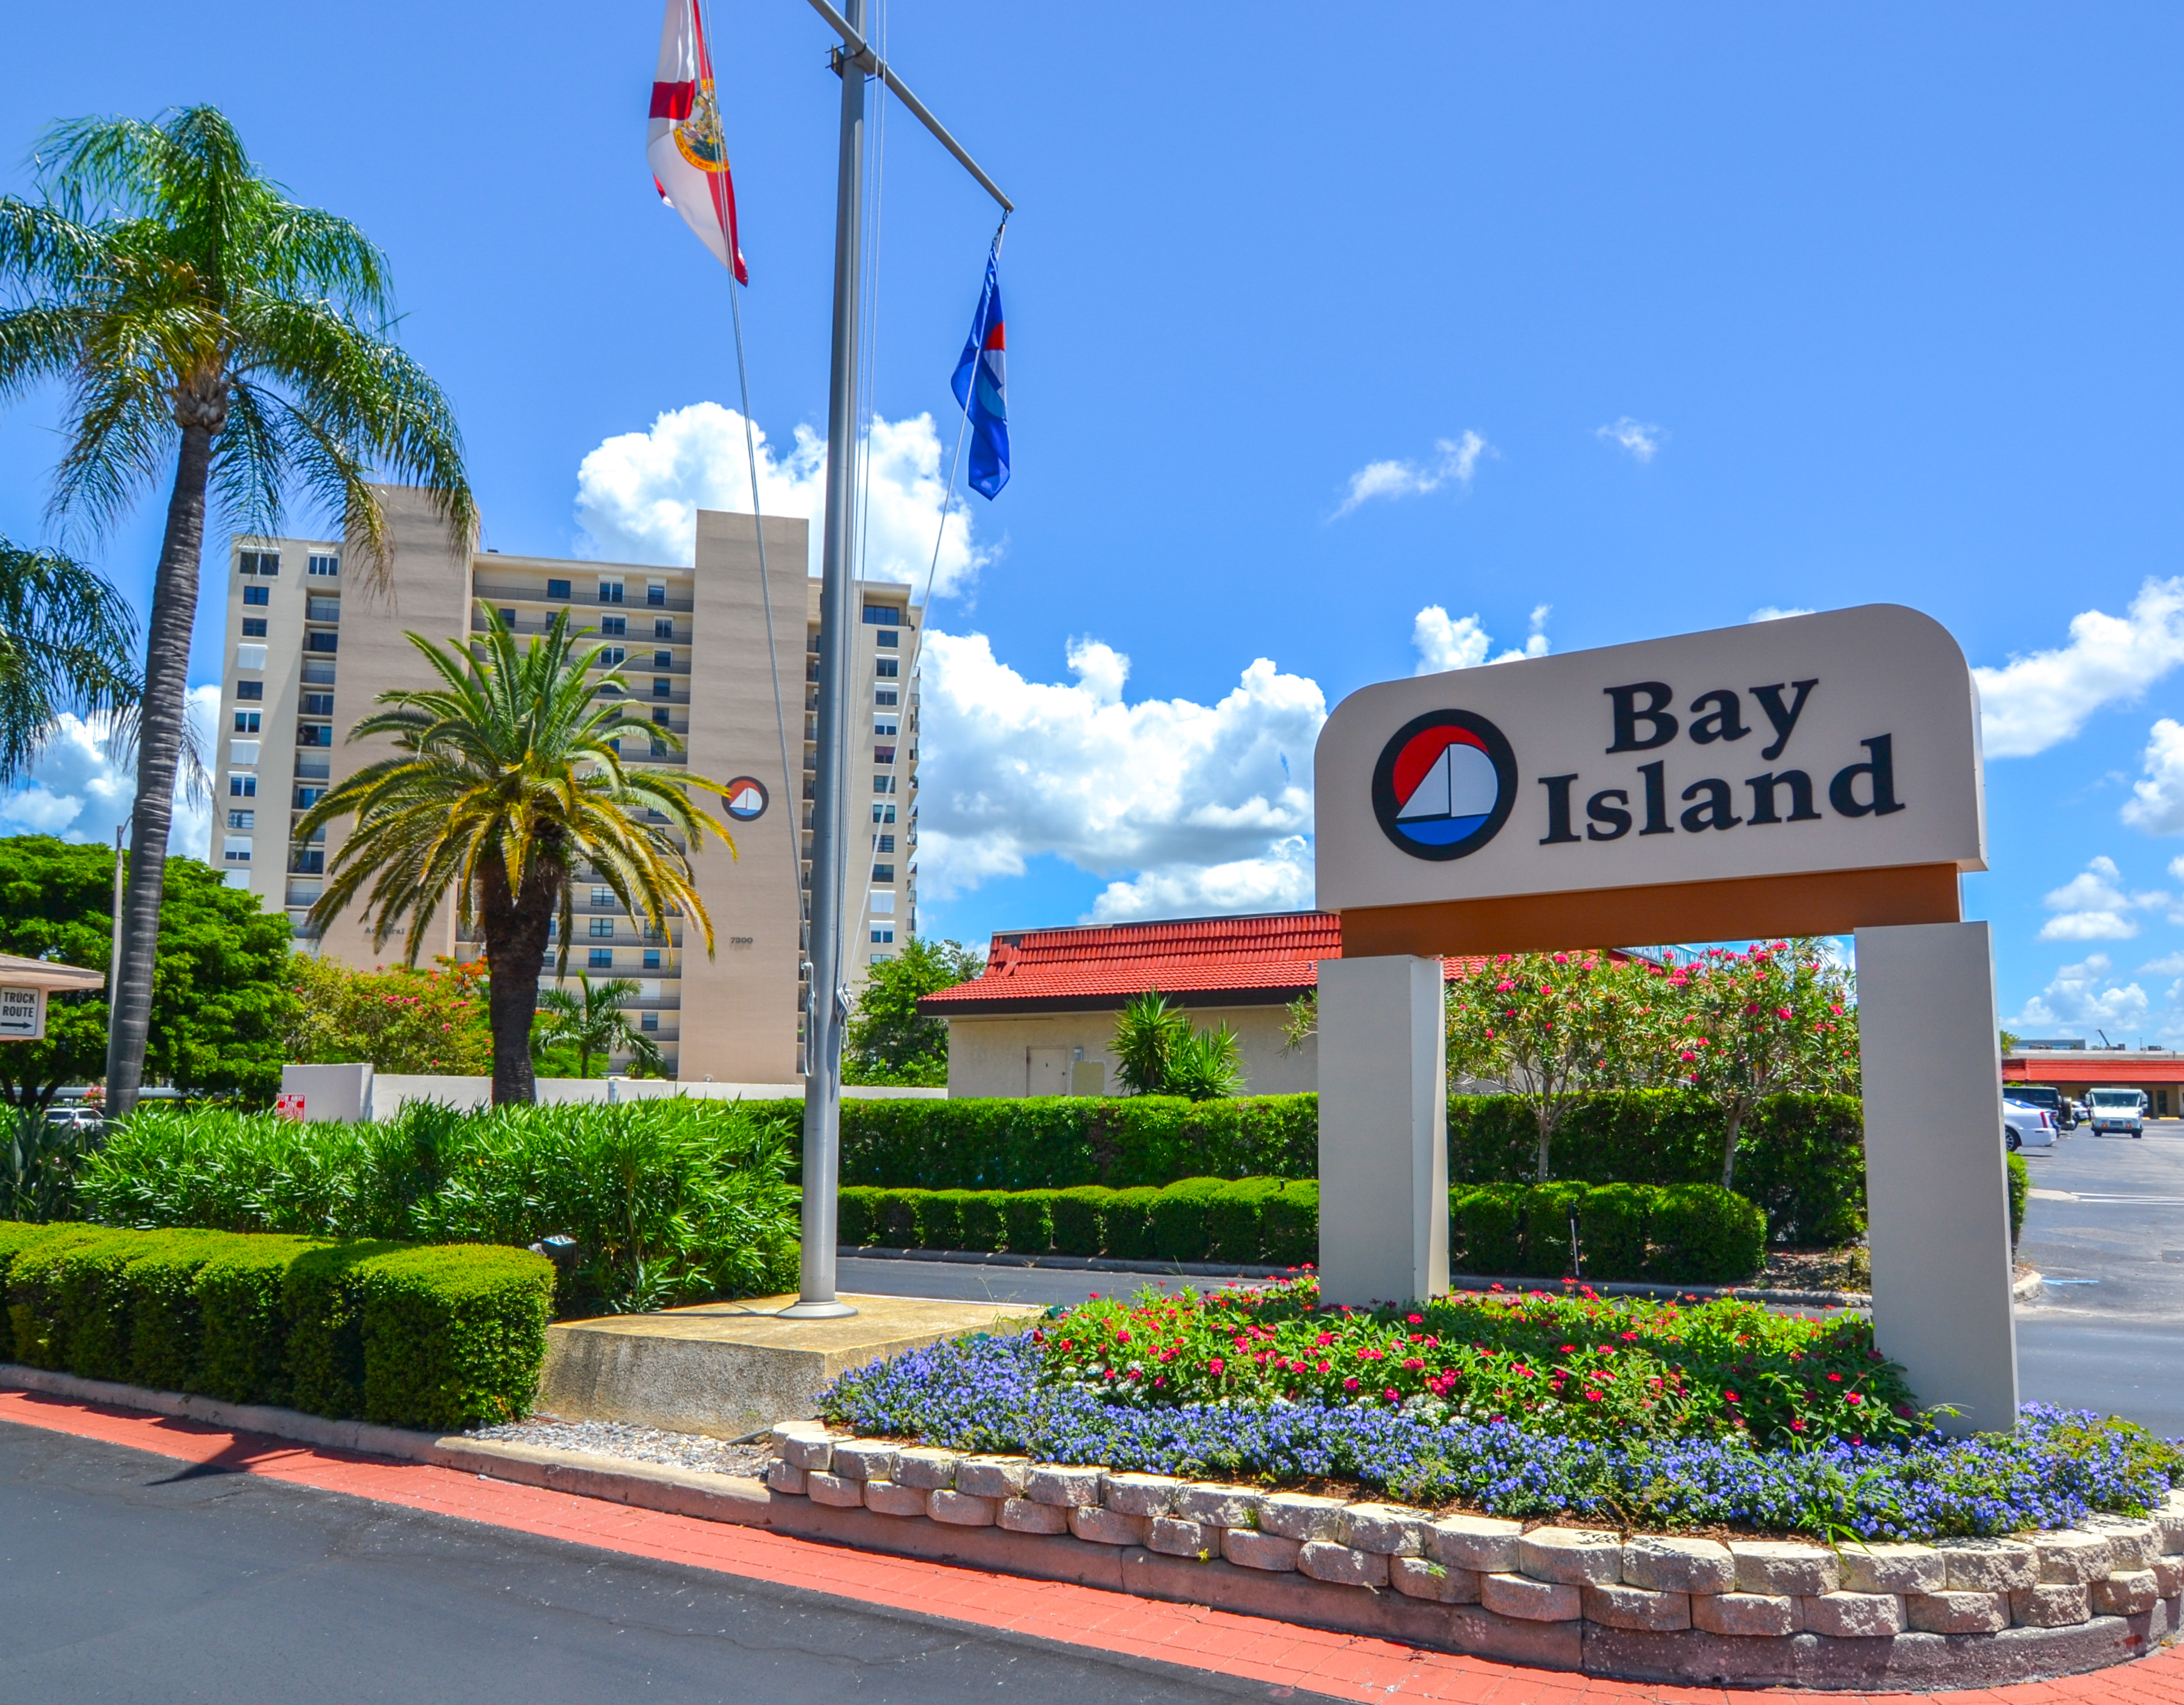 Bay Island Entrance in South Pasadena Florida